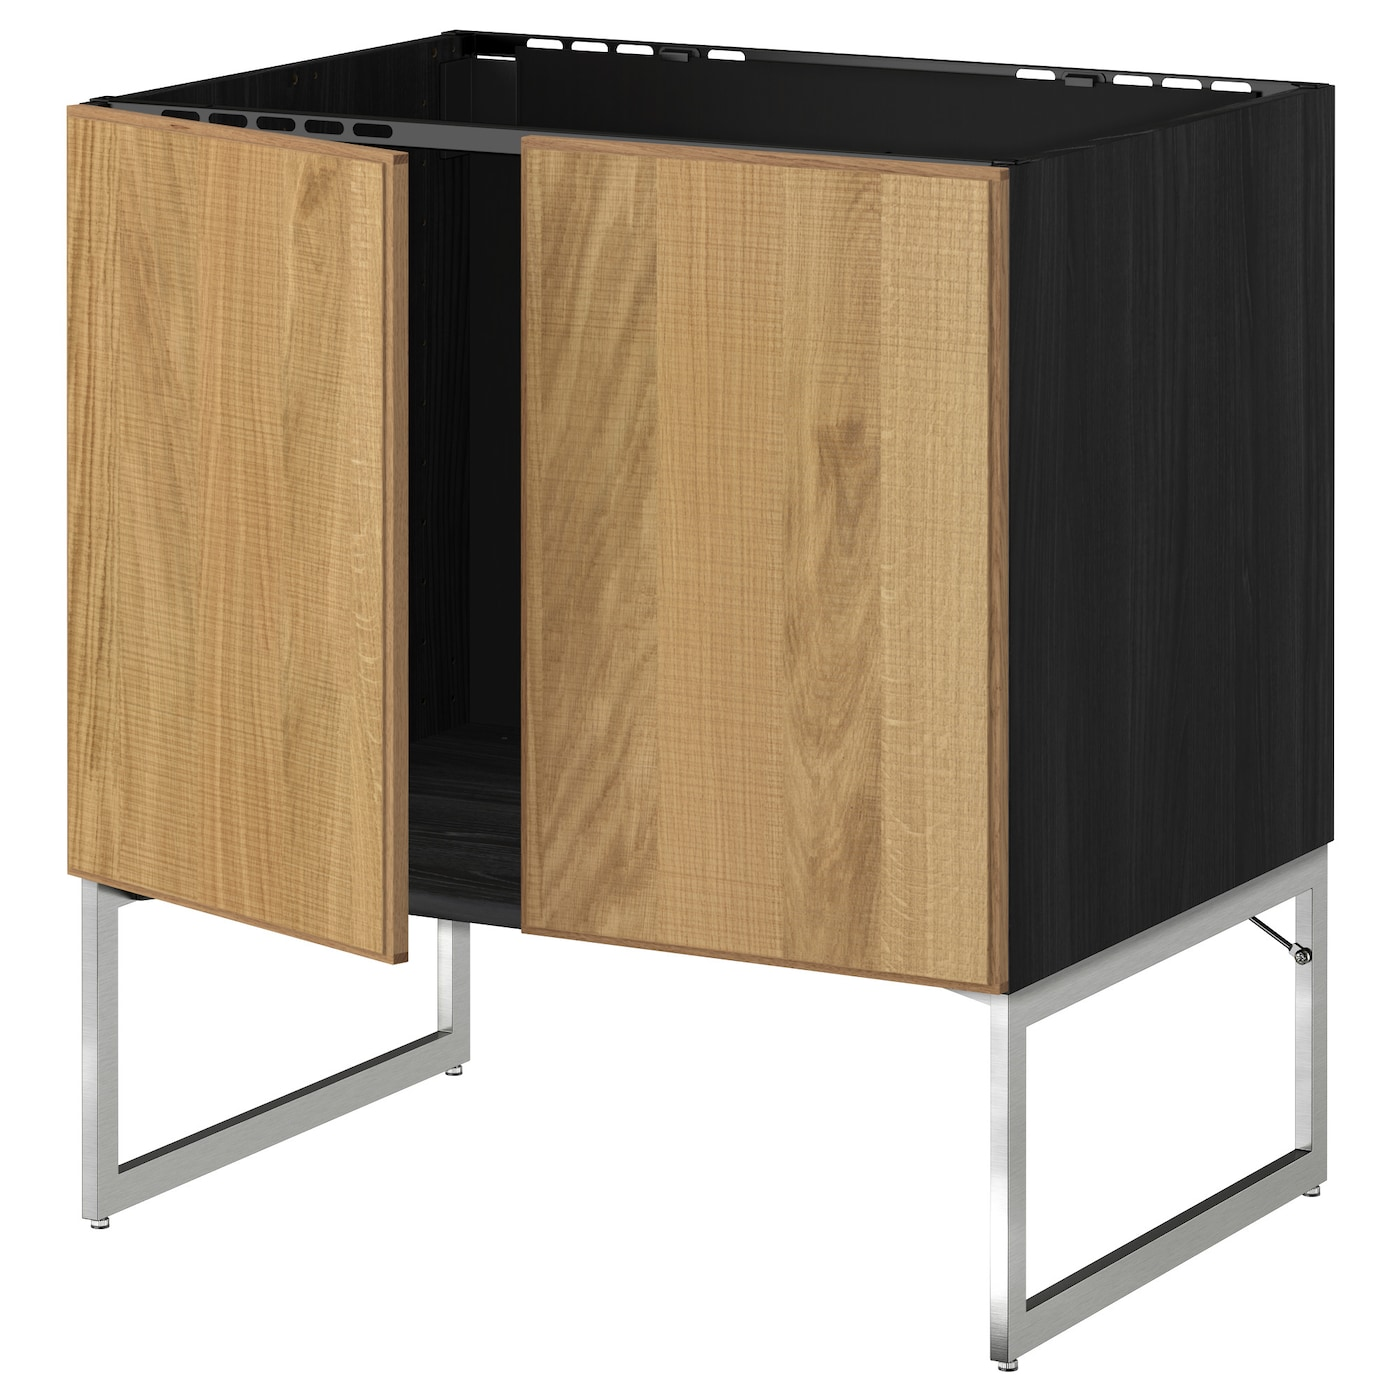 metod base cabinet for sink 2 doors black hyttan oak. Black Bedroom Furniture Sets. Home Design Ideas